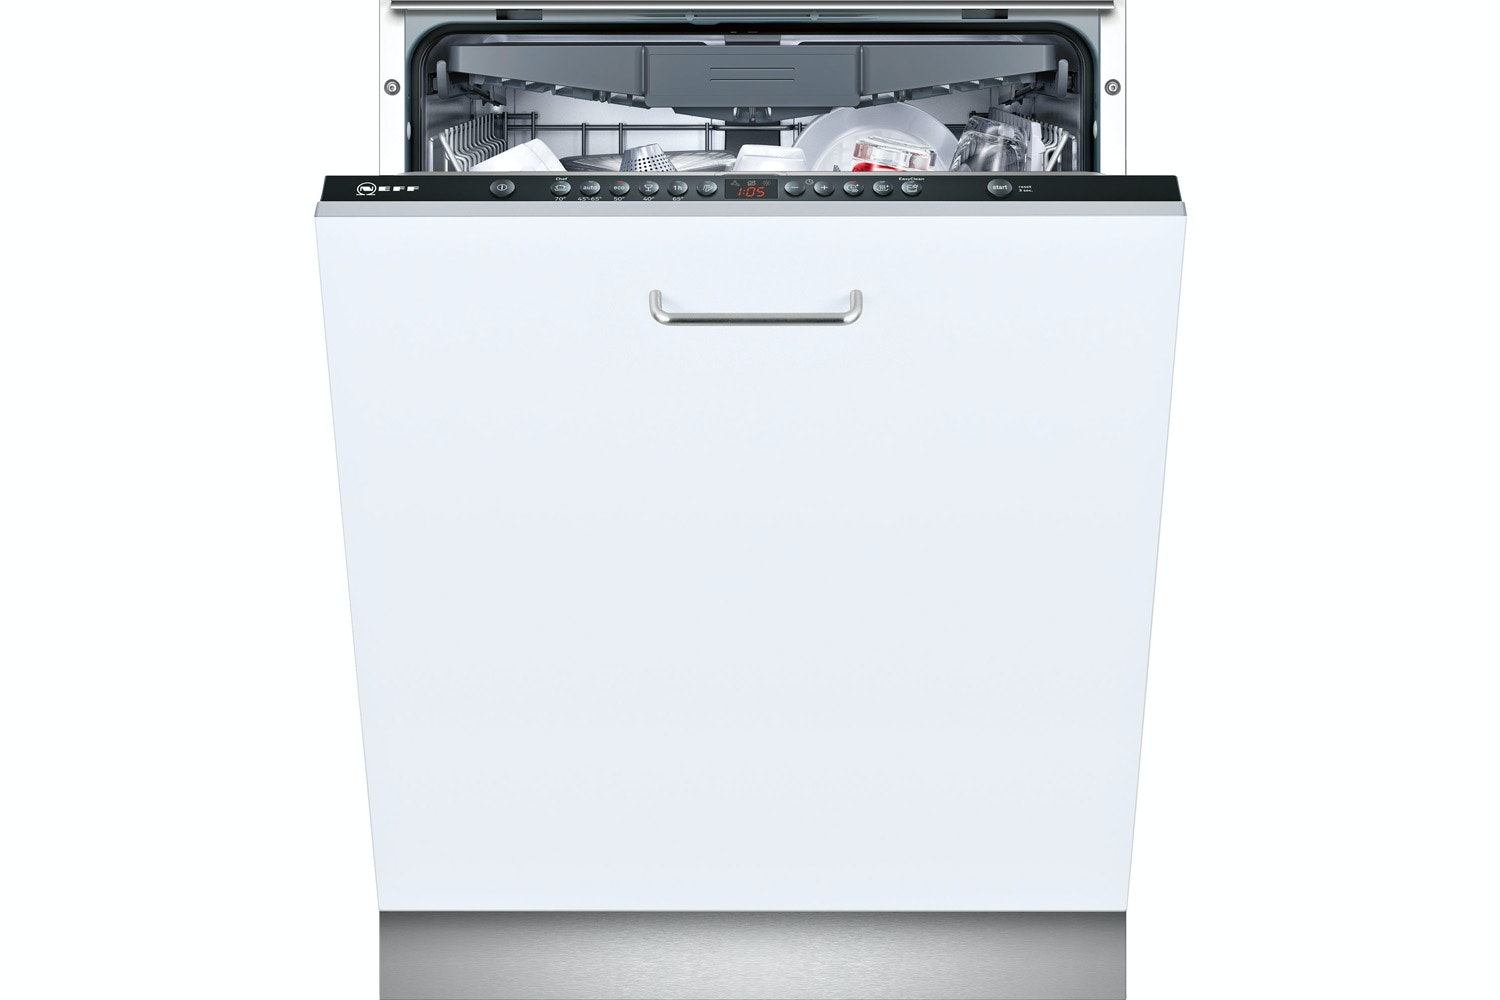 Neff Fully Integrated Dishwasher | 13 Place | S513K60X0G